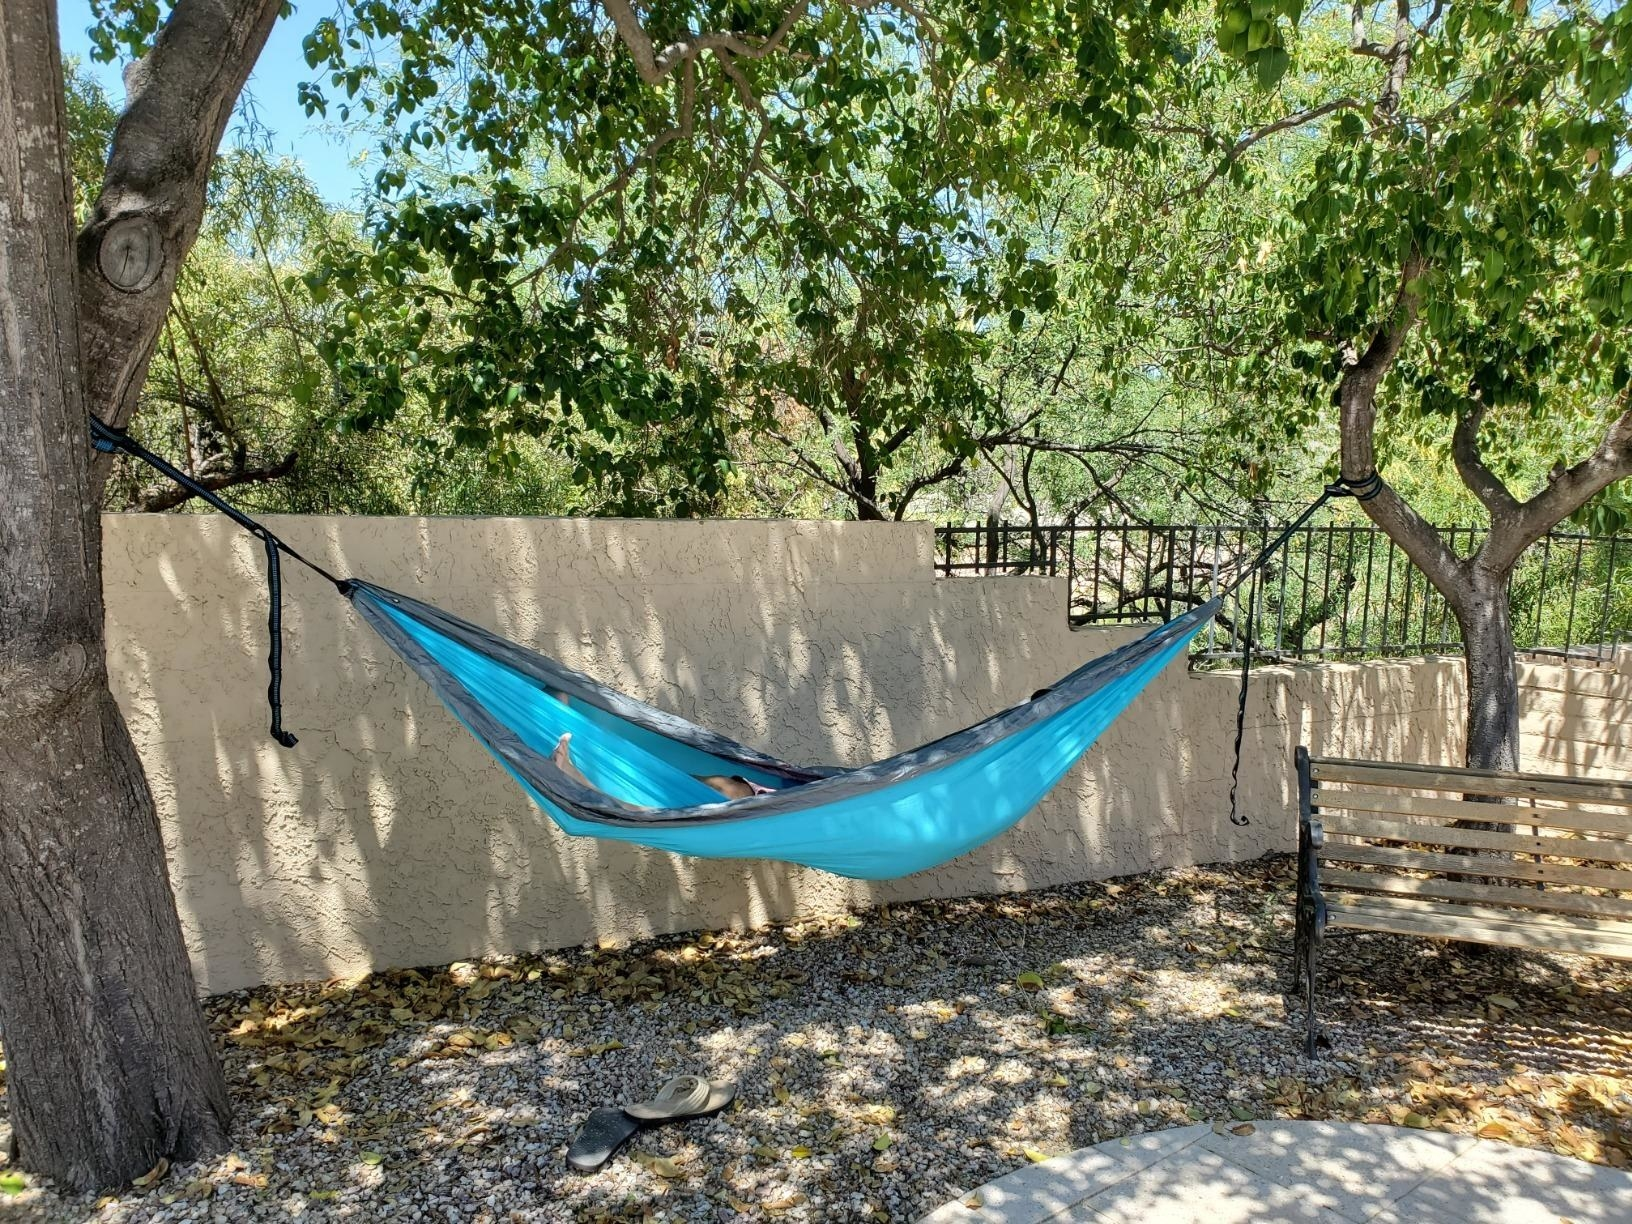 A reviewer photo of the hammock in blue tied to two trees in a yard